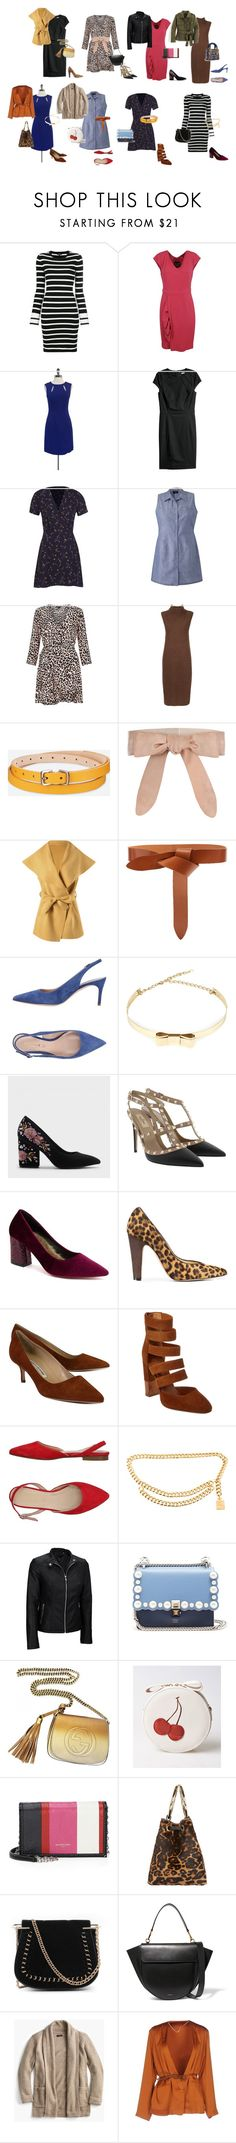 """""""Goodbye Winter! Hello Spring!"""" by mrsgreene0817 on Polyvore featuring Theory, Boutique Moschino, Trina Turk, Boohoo, AX Paris, Miss Selfridge, Anrealage, Uniqlo, Zimmermann and Isabel Marant"""